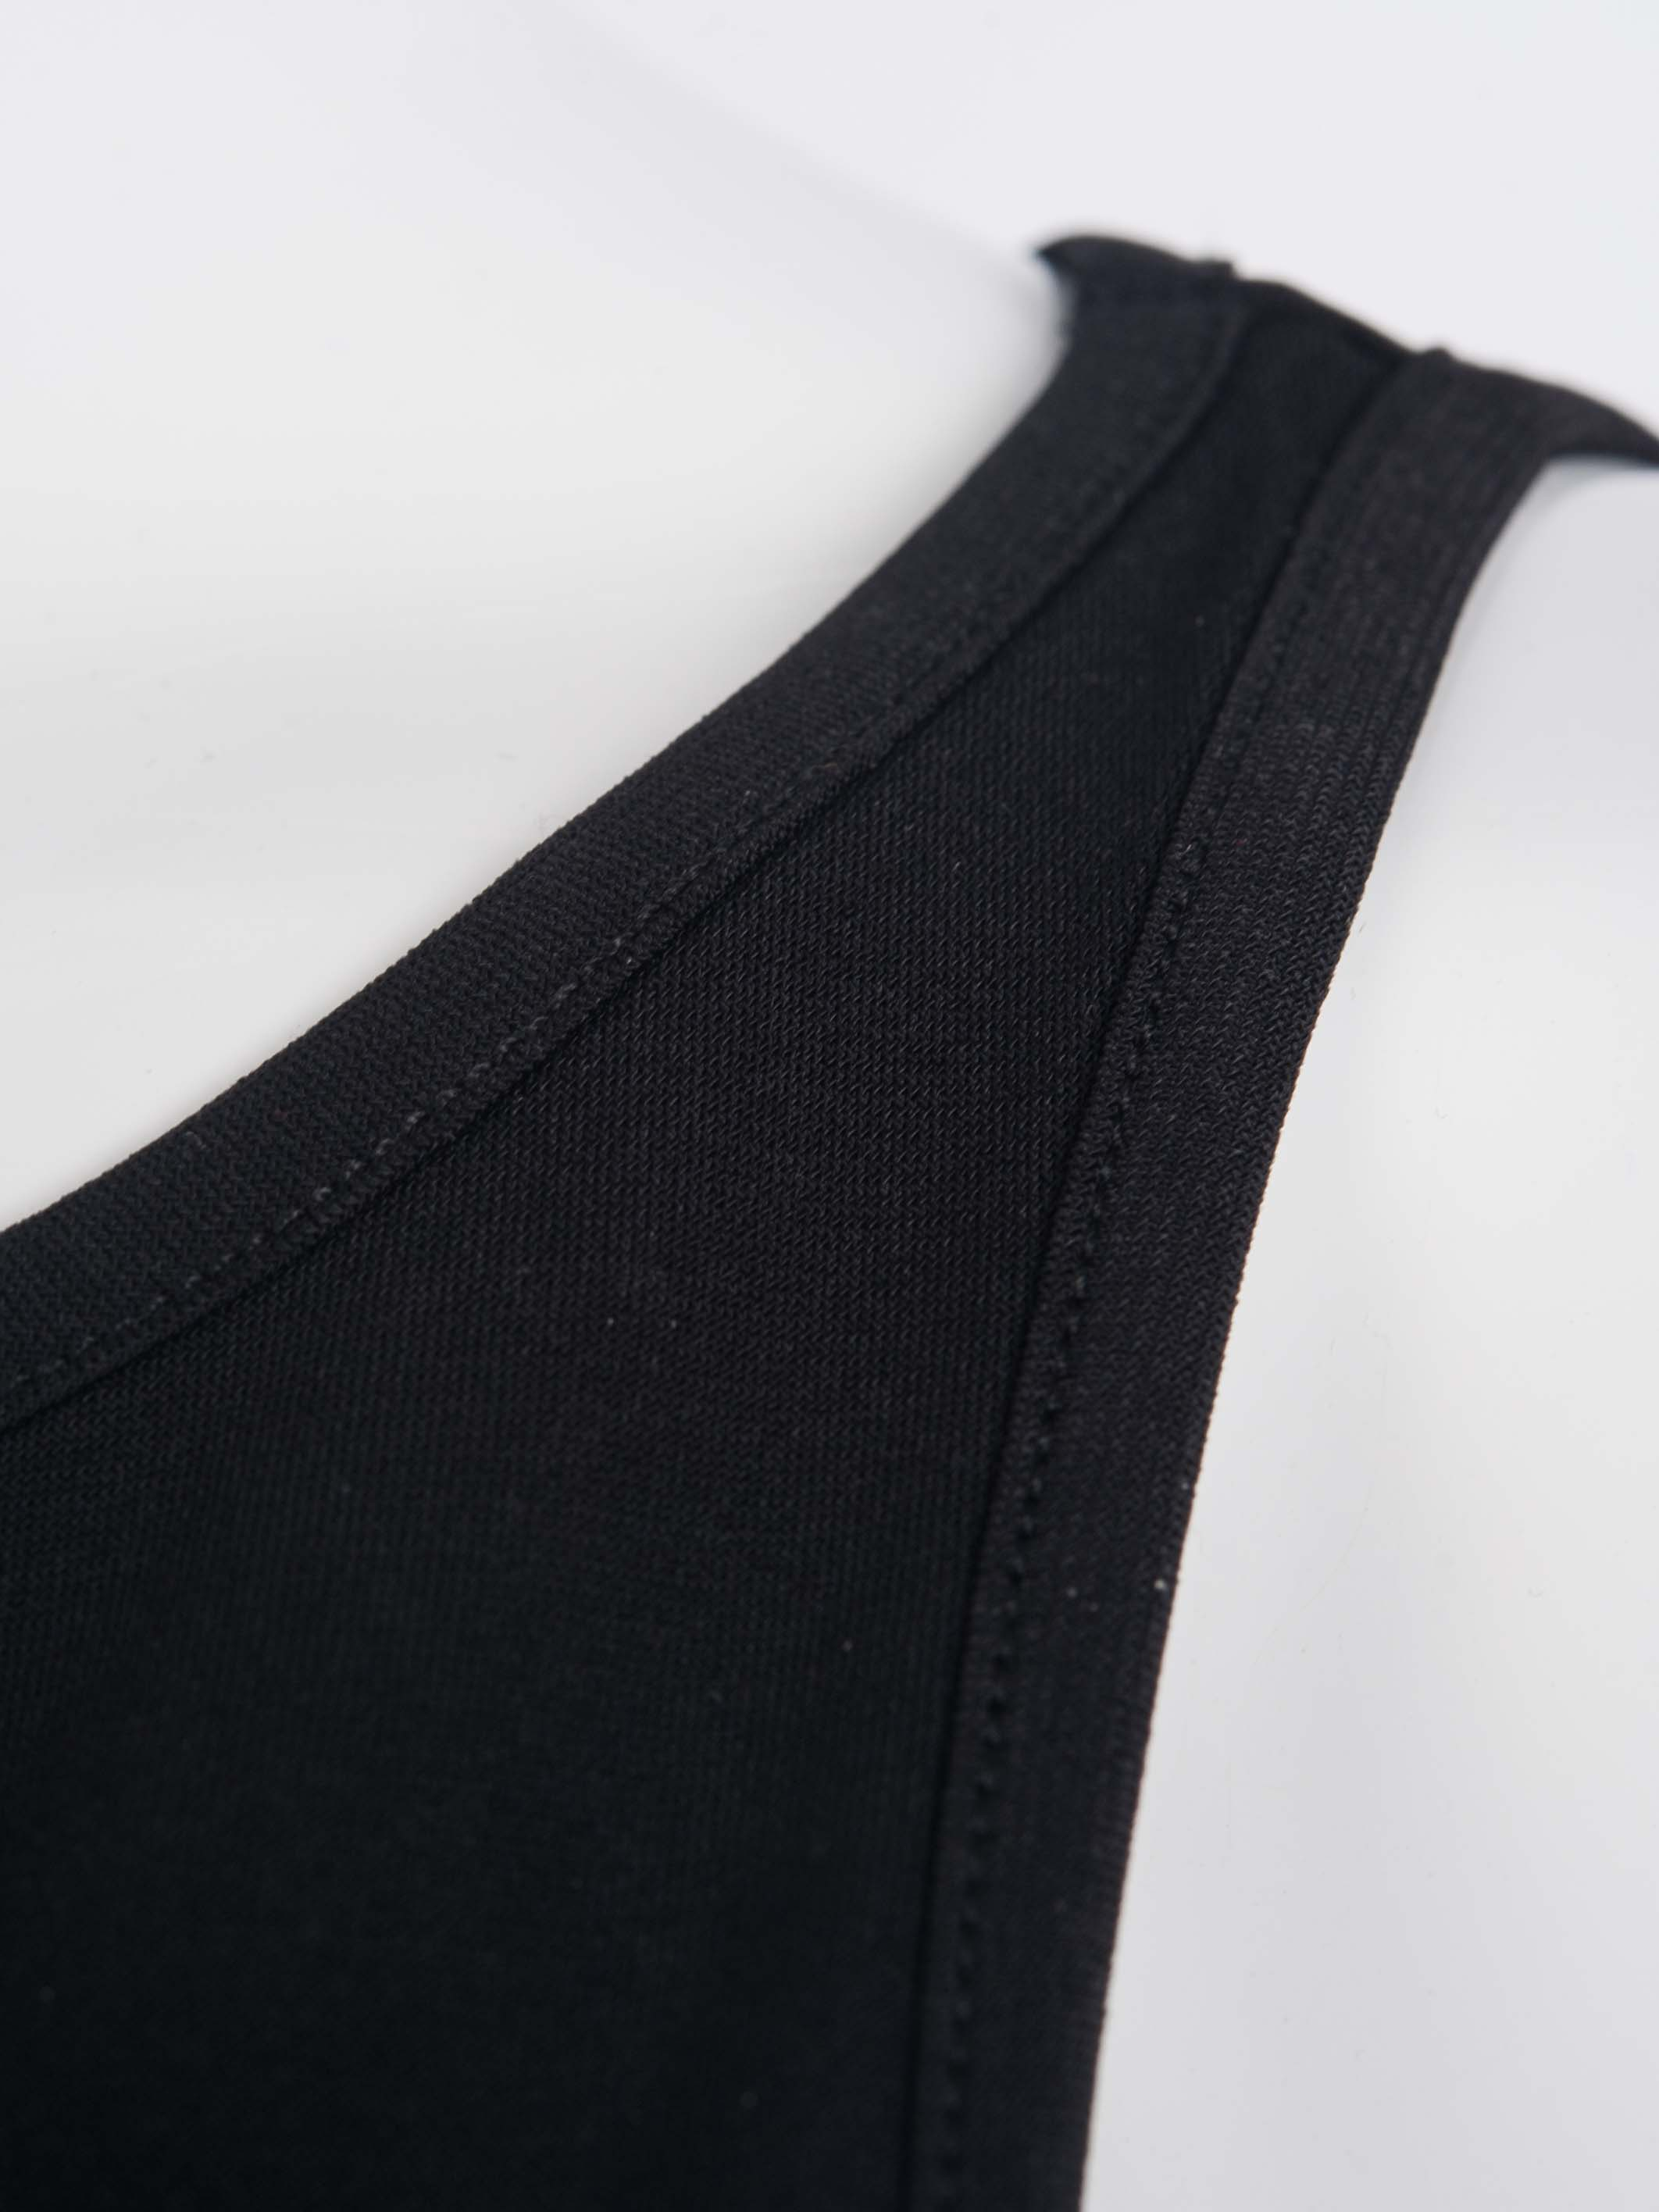 Choies Limited Edition Black Elasticity Crop Top - Choies.com